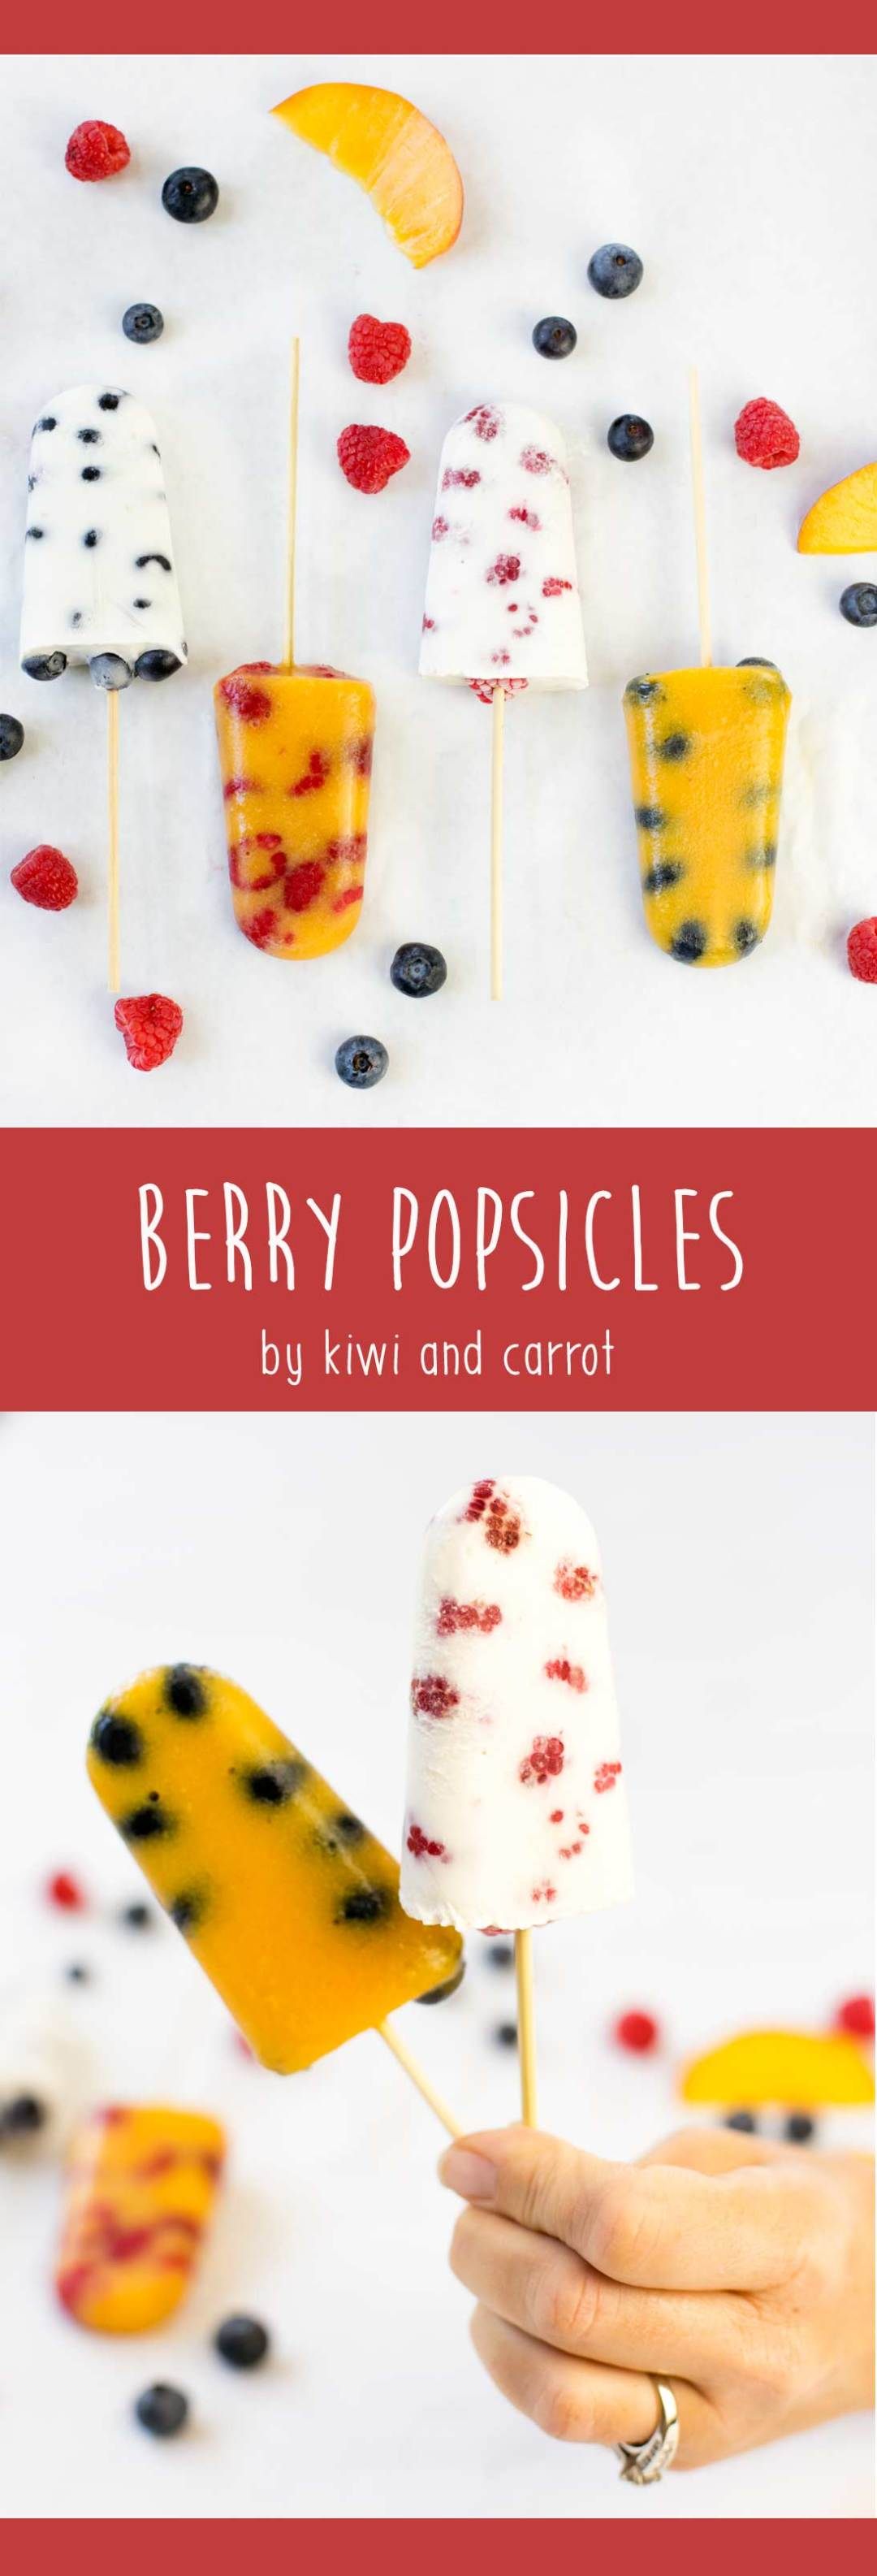 The perfect cure for that mid-summer heat wave...Berry Popsicles are made with just a few fresh ingredients but pack a big punch of fruity delicious flavor!